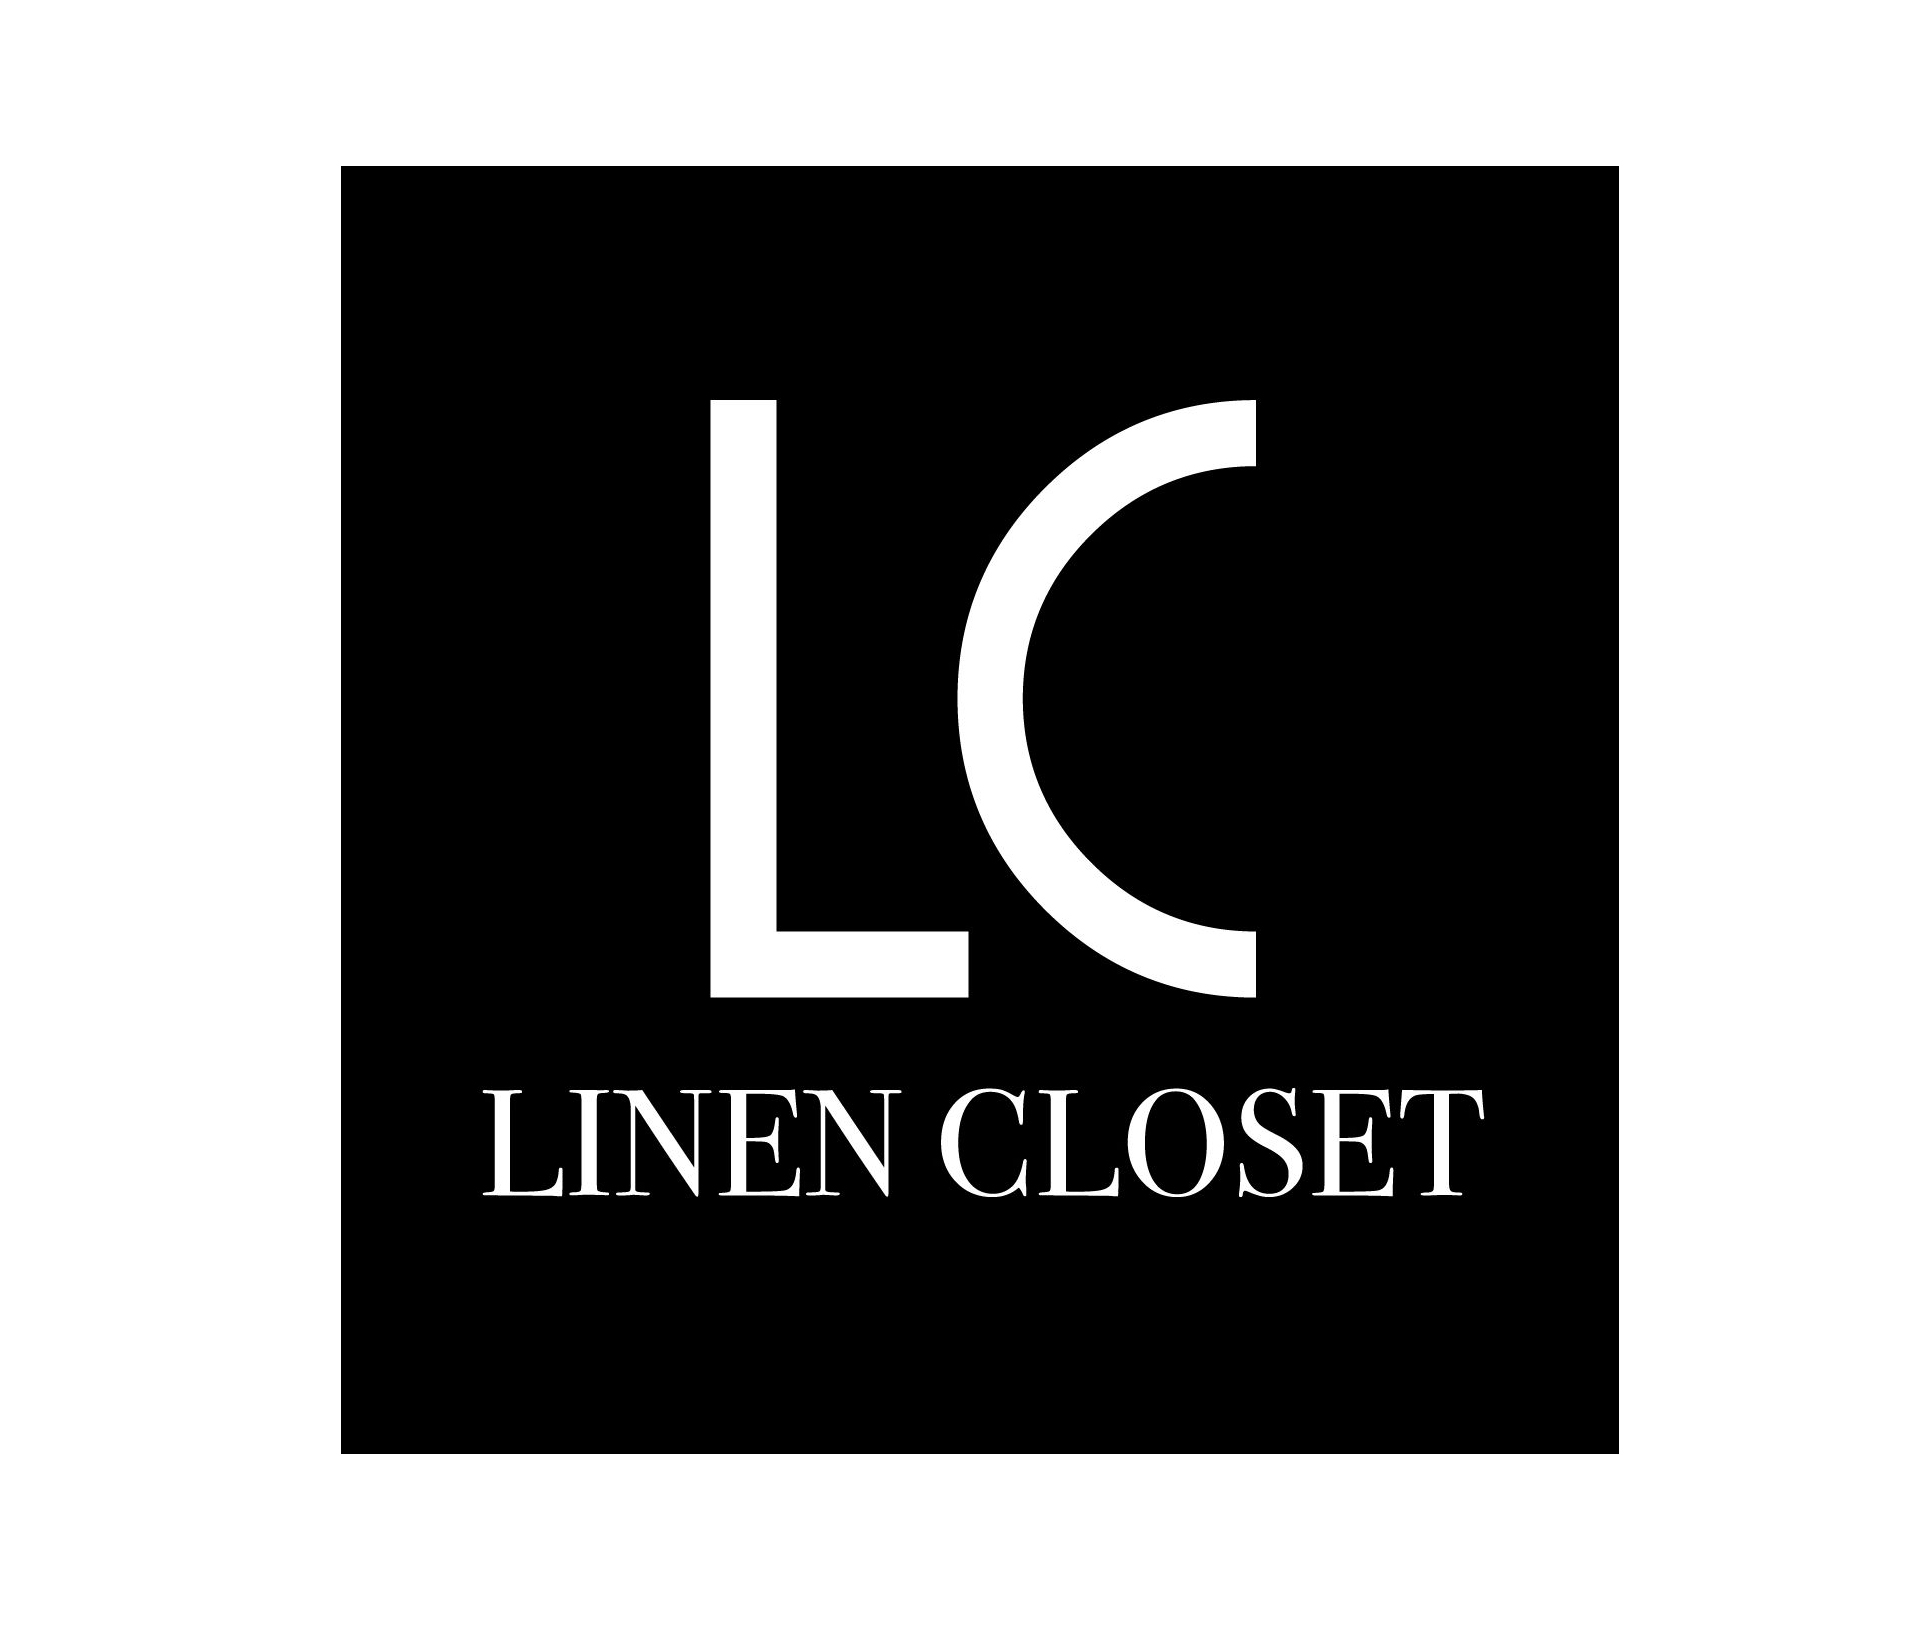 LinenClosetLogo_final-02 copy.jpg